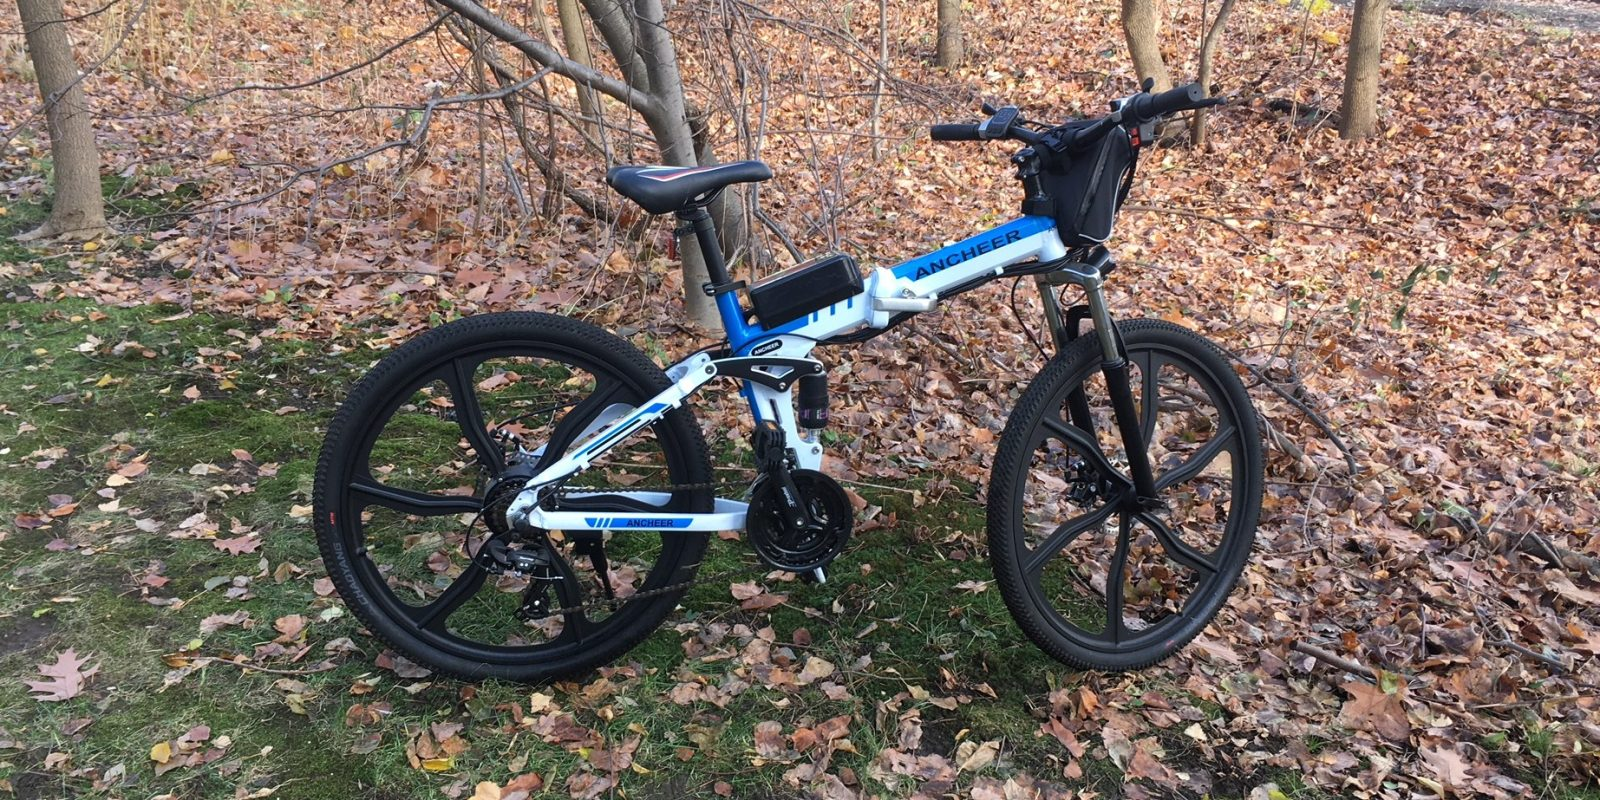 73f02391874 Ancheer folding electric mountain bike review: a suprisingly decent ...